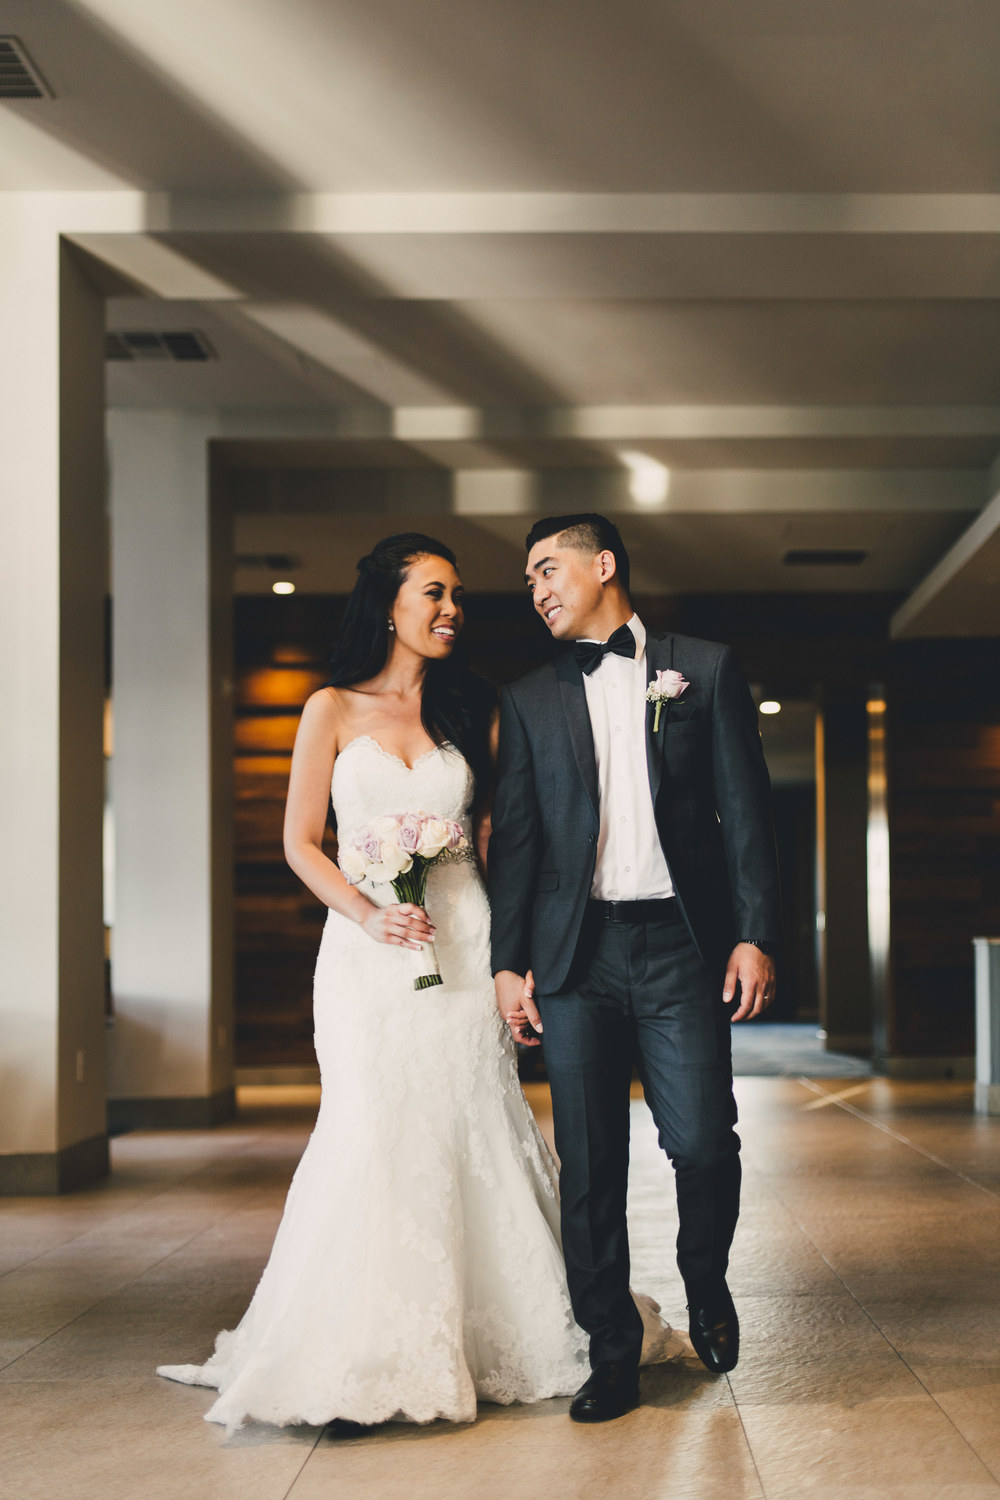 Madel + Andrew - Wedding, Natalie Griffo (134 of 169).jpg